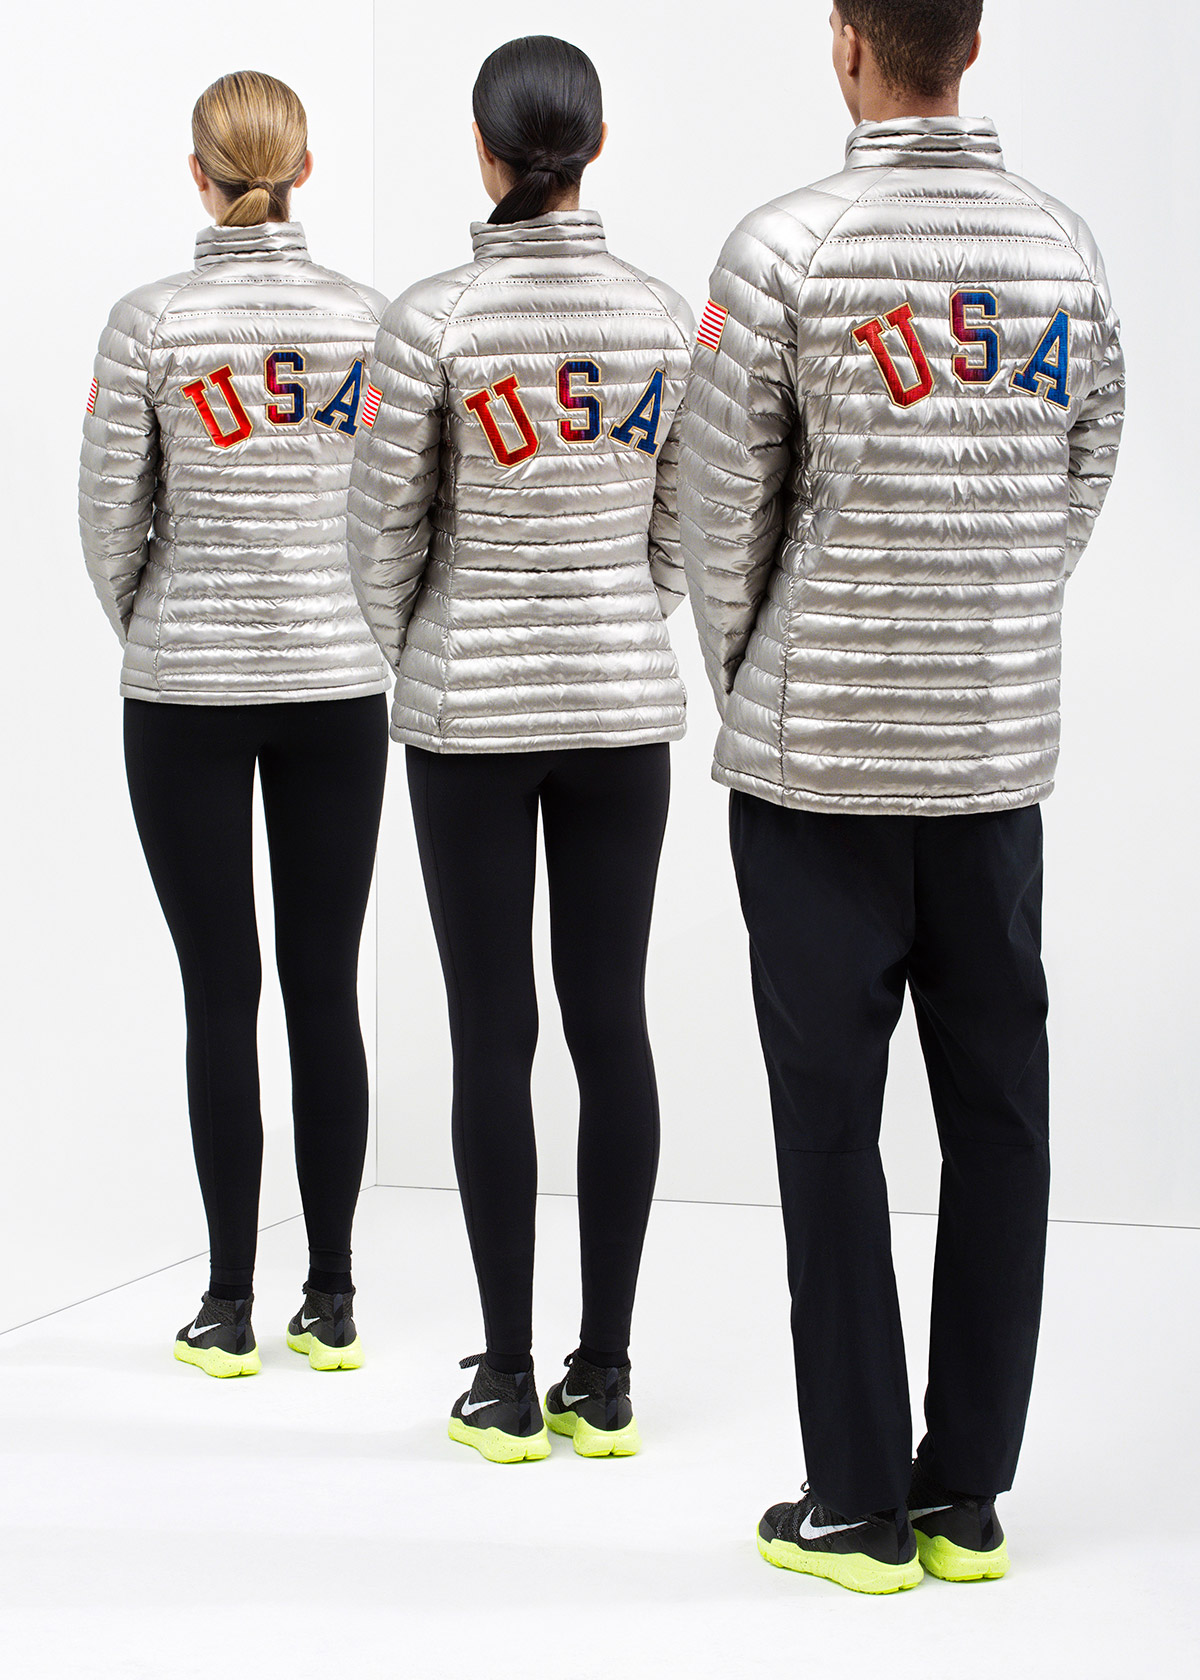 Nike_Team_USA_Winter_Collection_2